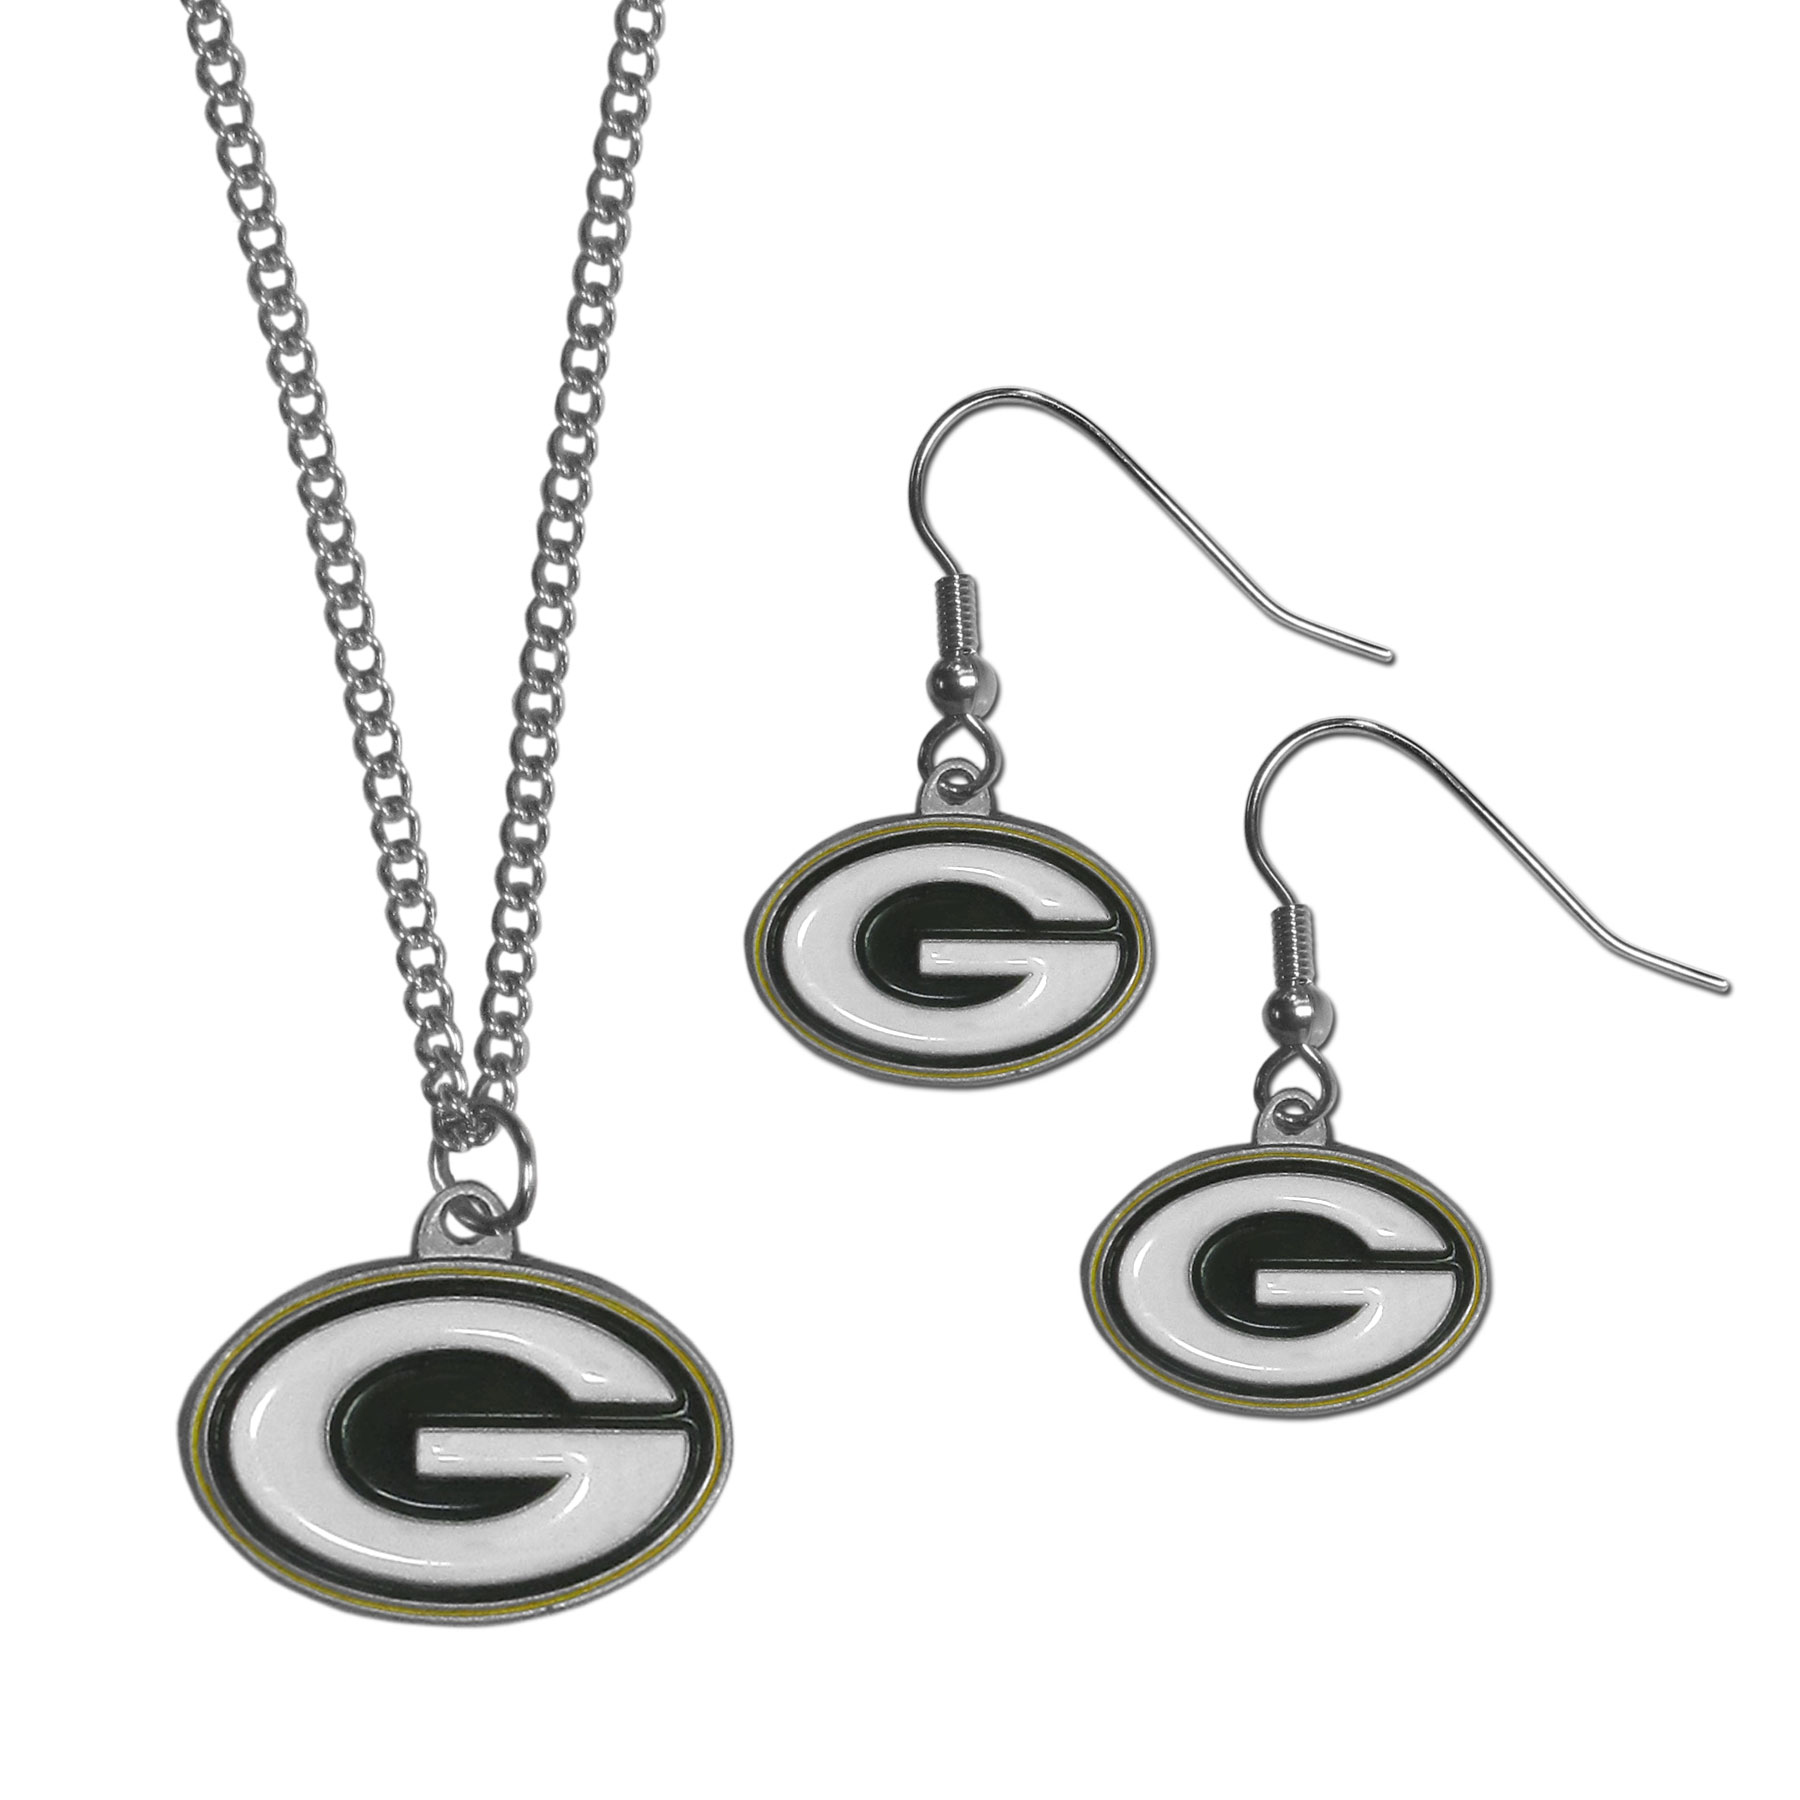 Green Bay Packers Dangle Earrings and Chain Necklace Set - This classic jewelry set contains are most popular Green Bay Packers dangle earrings and 22 inch chain necklace. The trendy, dangle earrings are lightweight and feature a fully cast metal team charm with enameled team colors. The matching necklace completes this fashion forward combo and is a spirited set that is perfect for game day but nice enough for everyday.